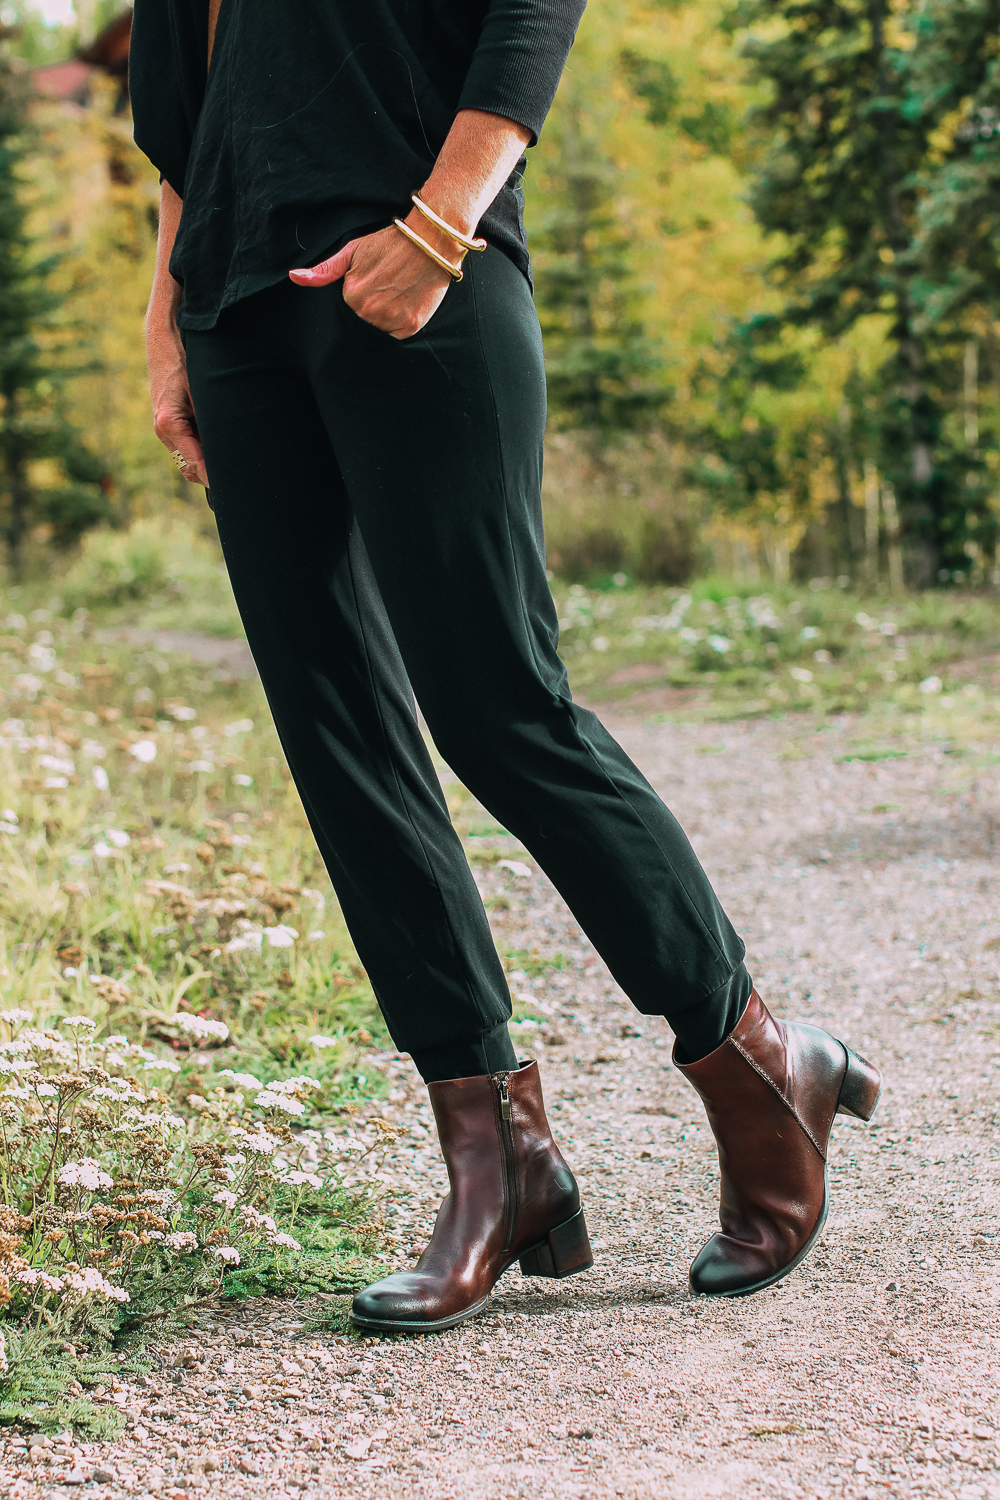 ankle boots for walking in Bison brown with low block heel and comfort, cushion technology by ECCO on fashion blogger in black joggers by Norma Kamali and black off shoulder top with brown crossbody bag, best items from shopbop sale